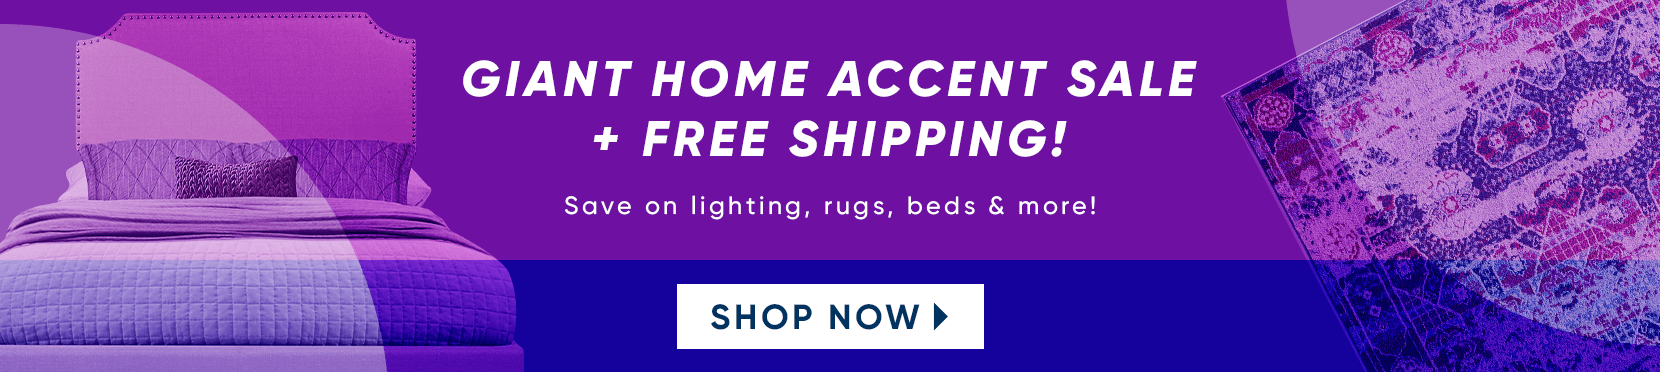 giant home accent sale + free shipping. save on lighting, rugs, beds & more. shop now